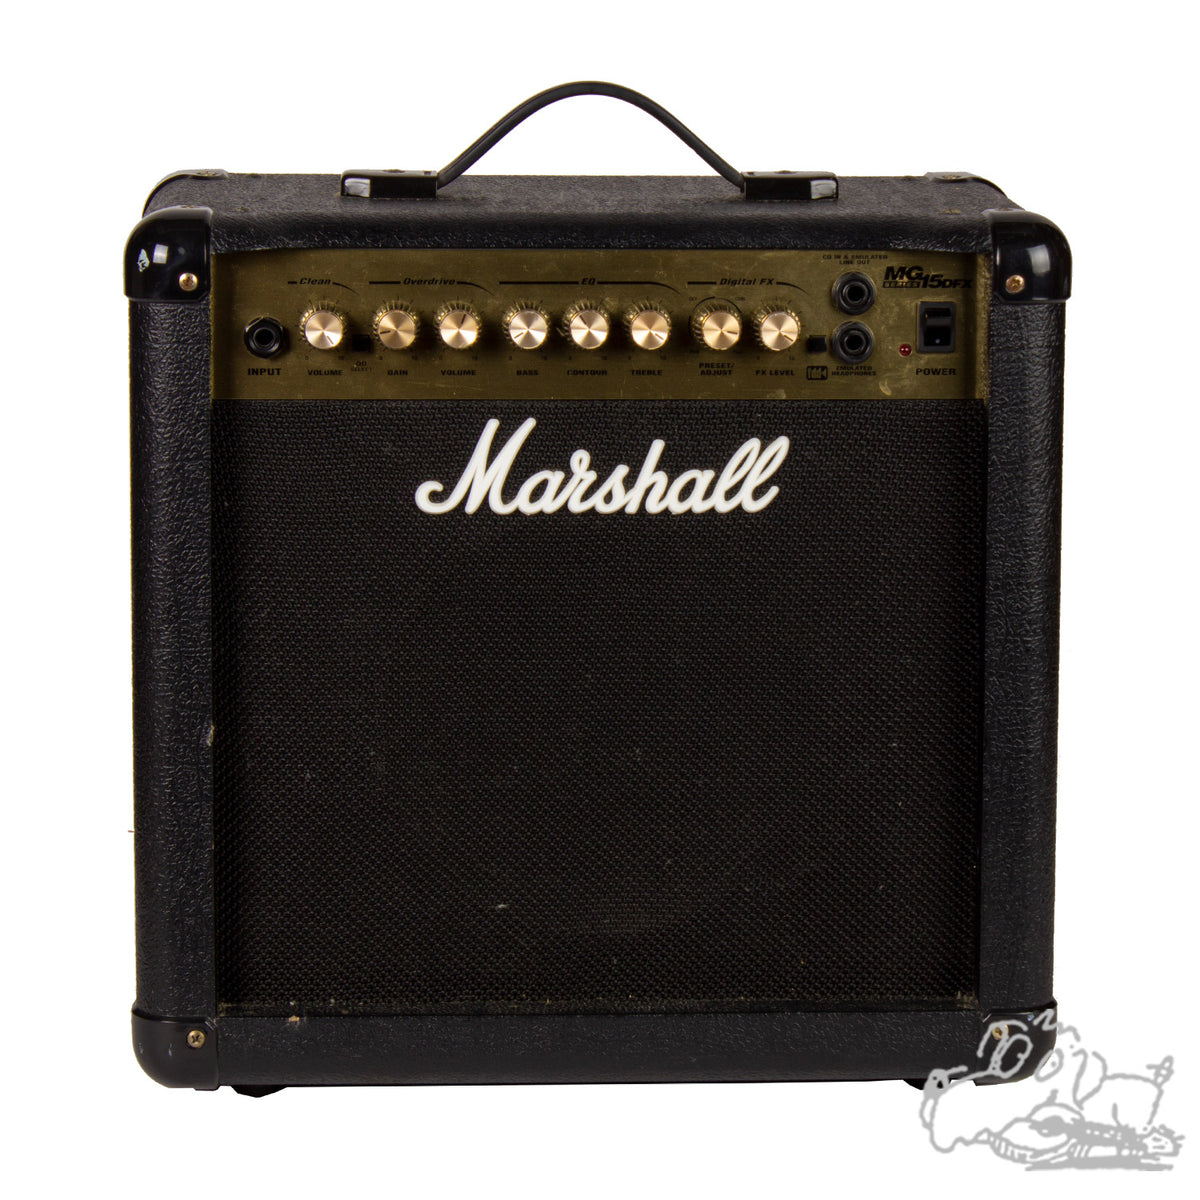 Marshall MGD15X Solid State Guitar Amplifier (Used)